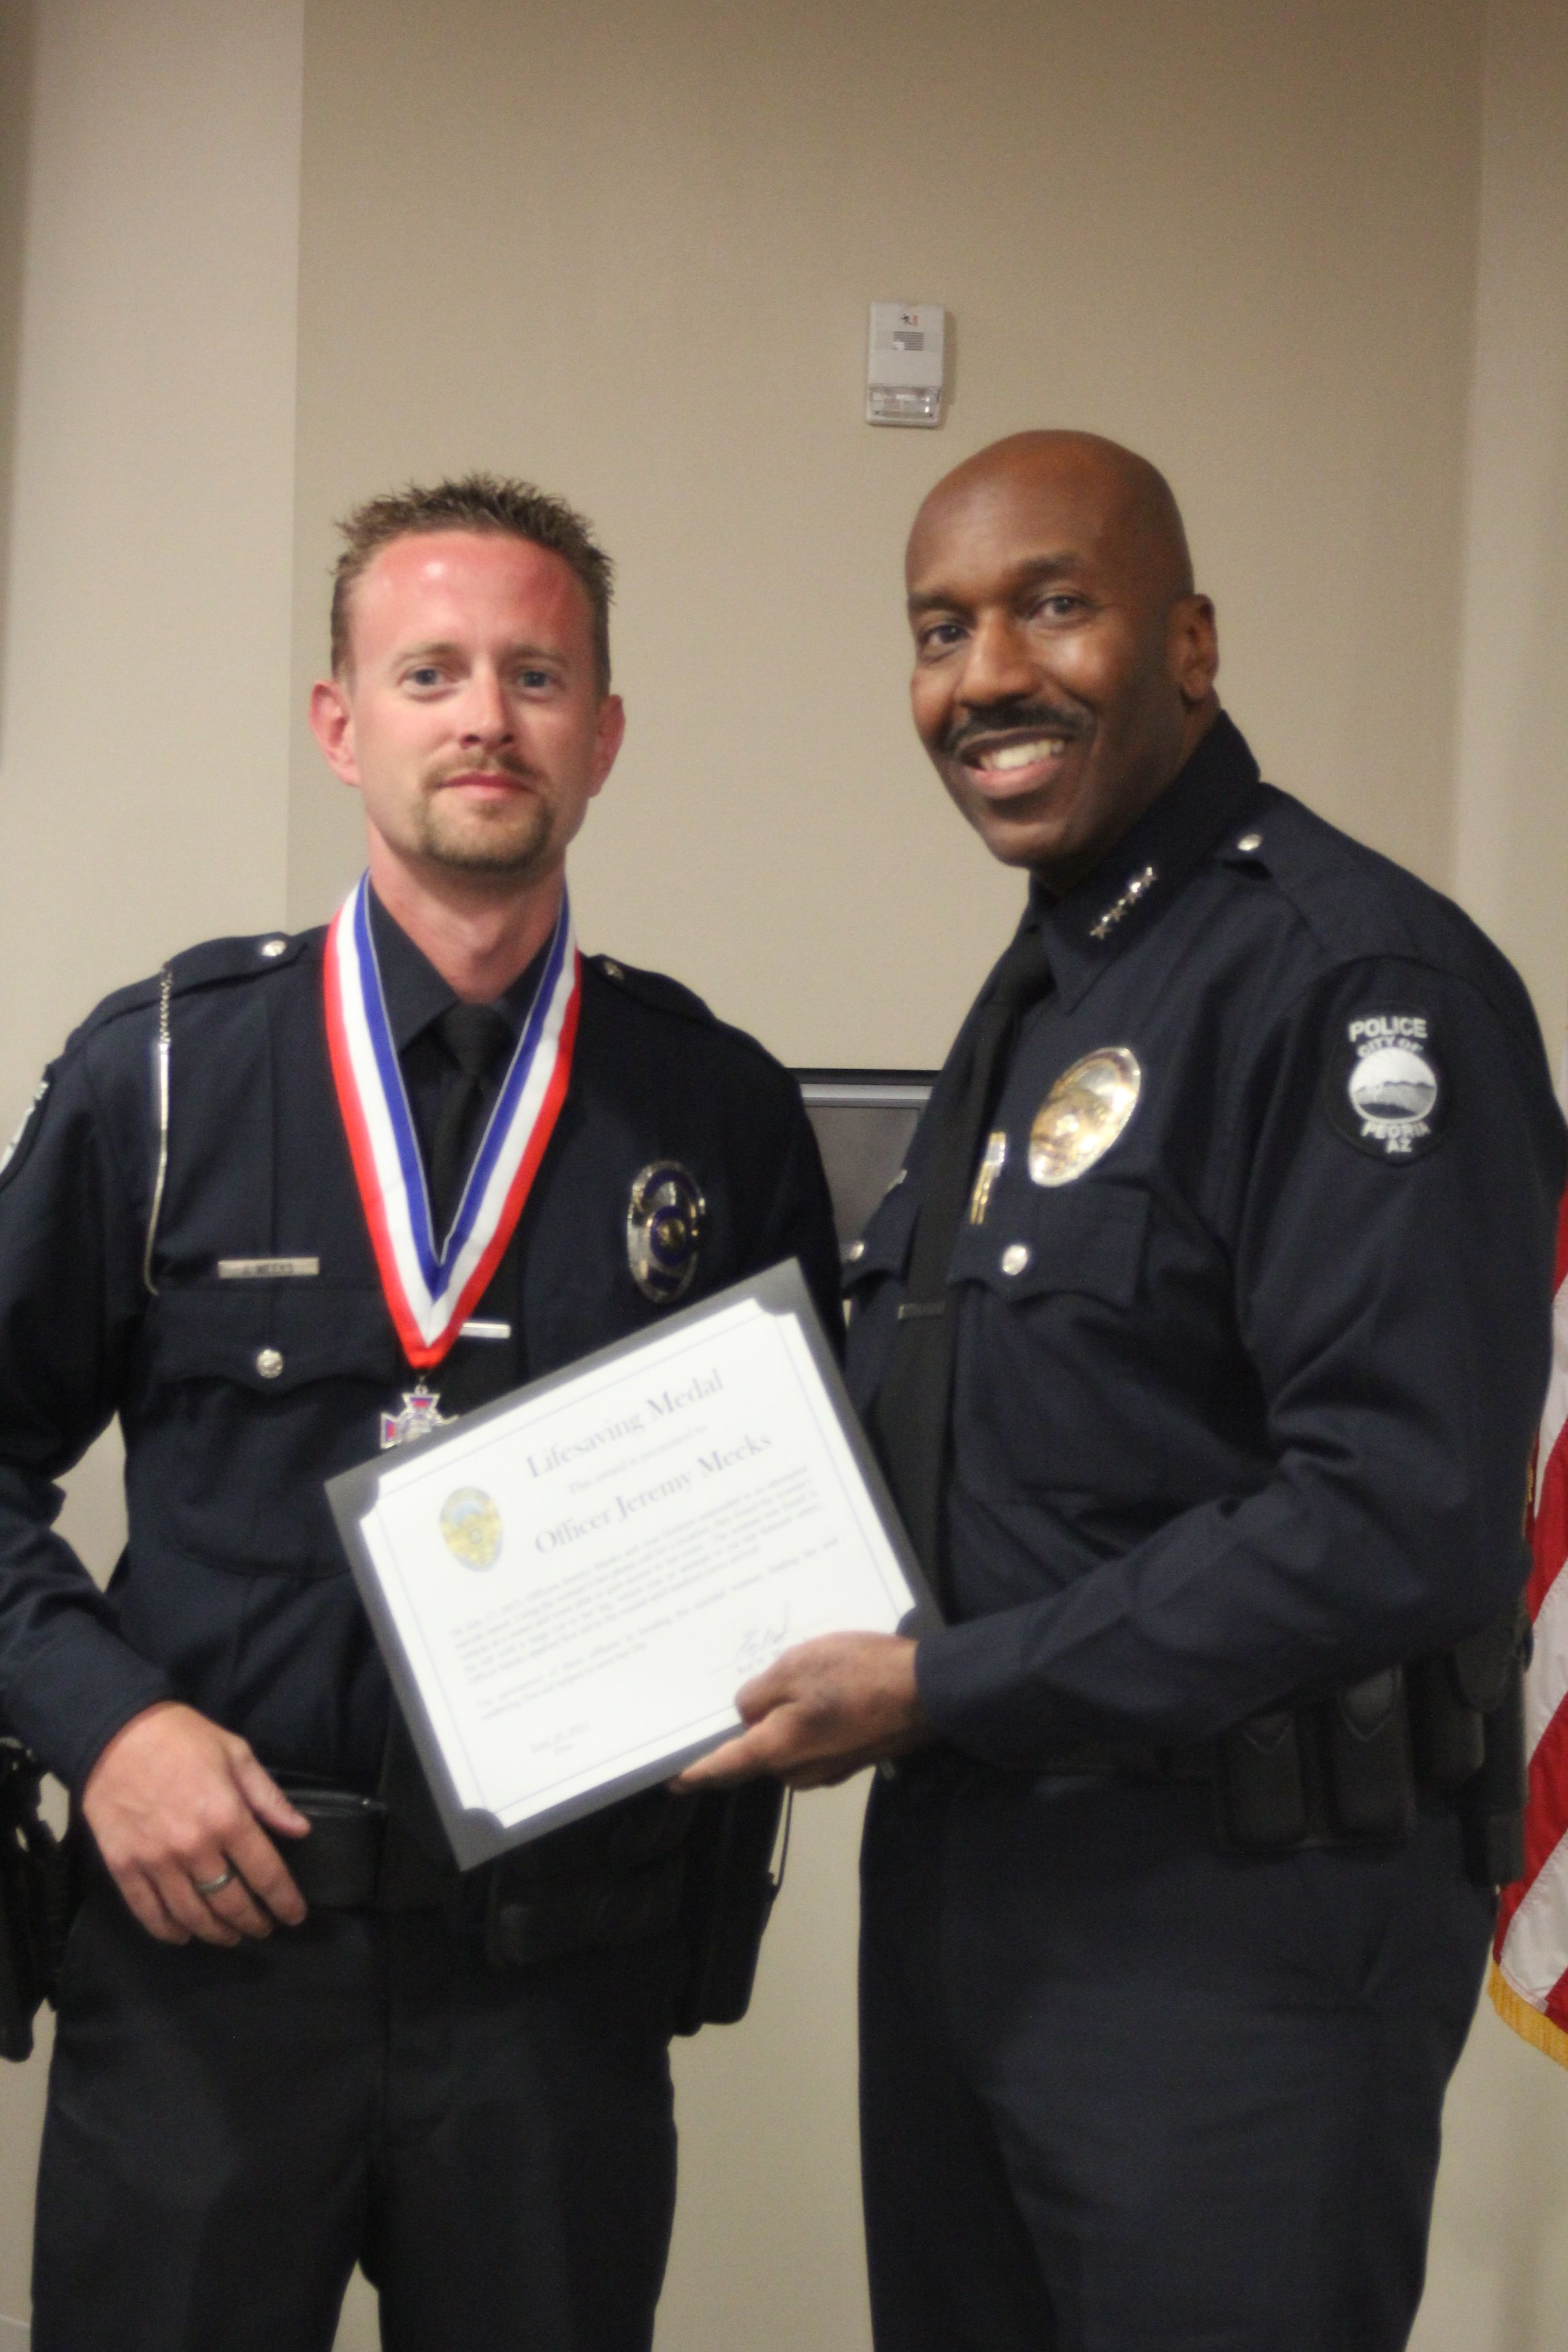 Officer J Meeks Awarded The Department Lifesaving Award For His Actions In 2013 Recognition Performance Police Department